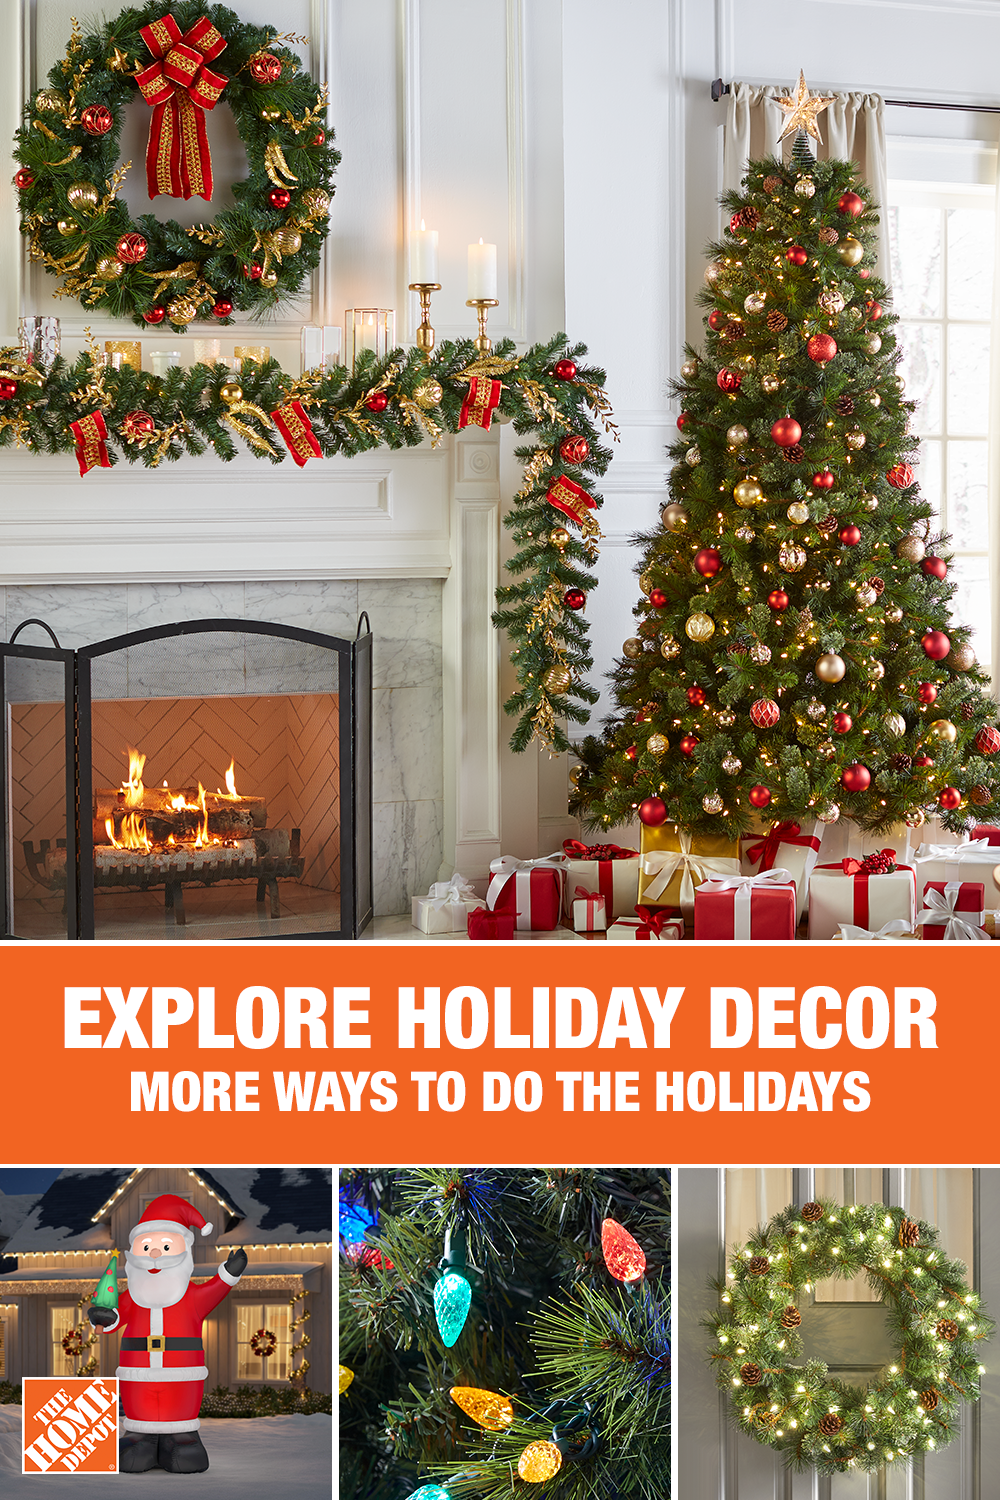 Your Season Starts With Decor From The Home Depot Make This Year Magical Home Depot Christmas Decorations Holiday Decor Christmas Easy Christmas Decorations